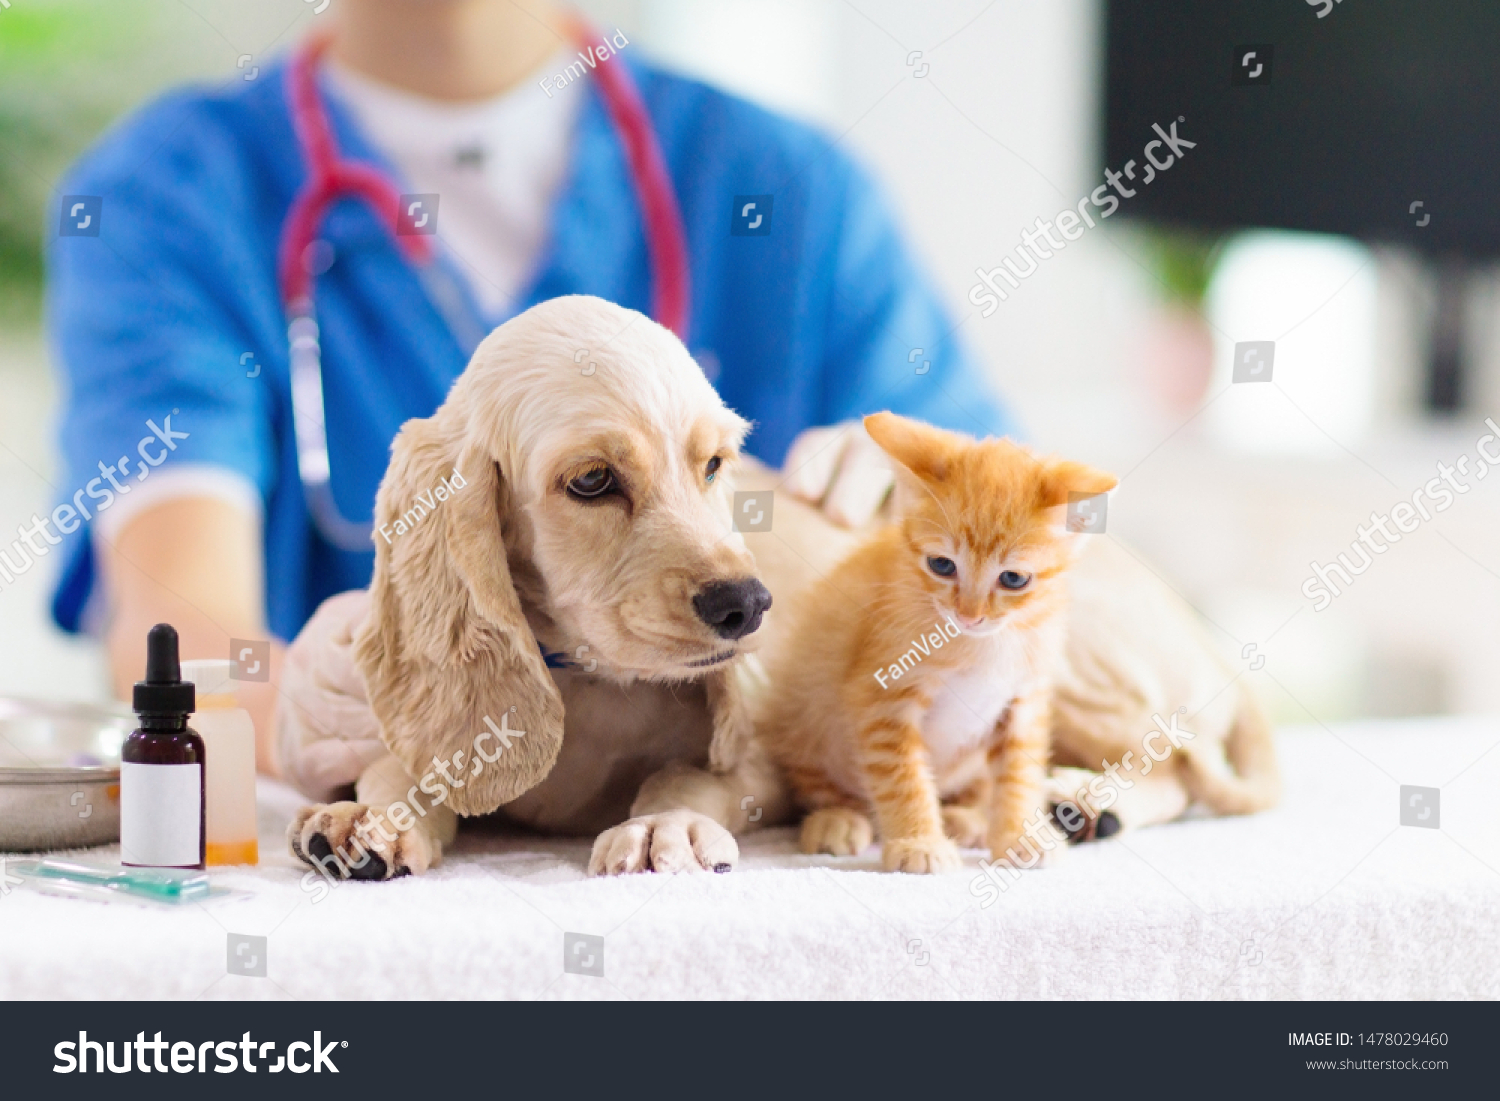 Vet examining dog and cat. Puppy and kitten at veterinarian doctor. Animal clinic. Pet check up and vaccination. Health care. #1478029460